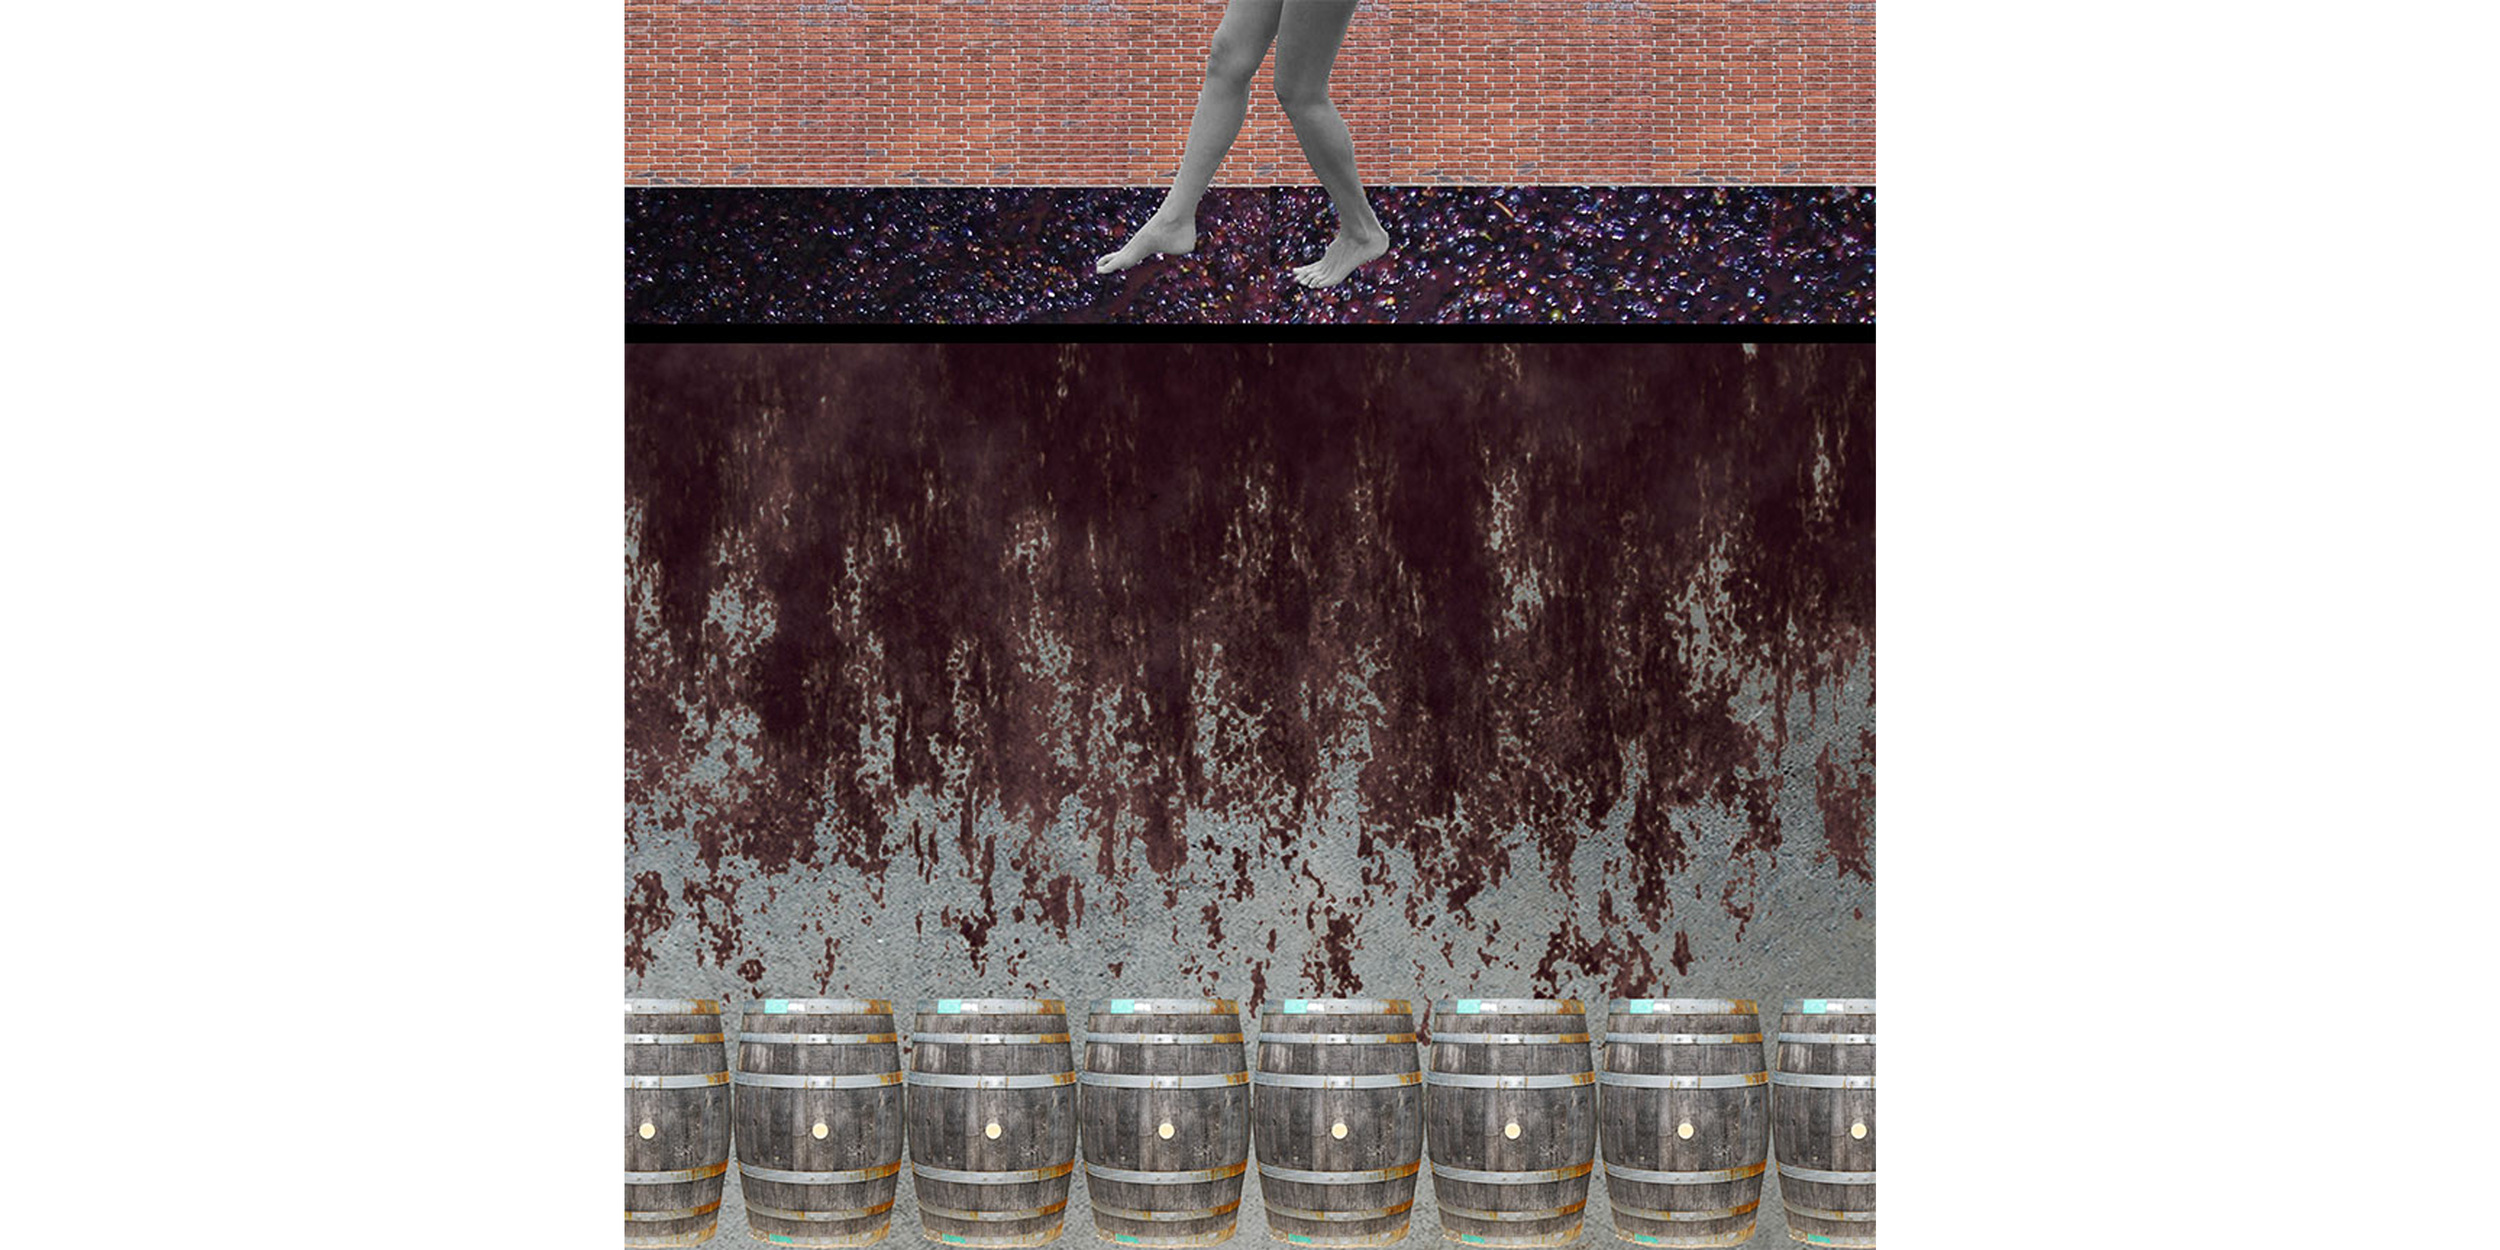 grape-stomp-collage.jpg